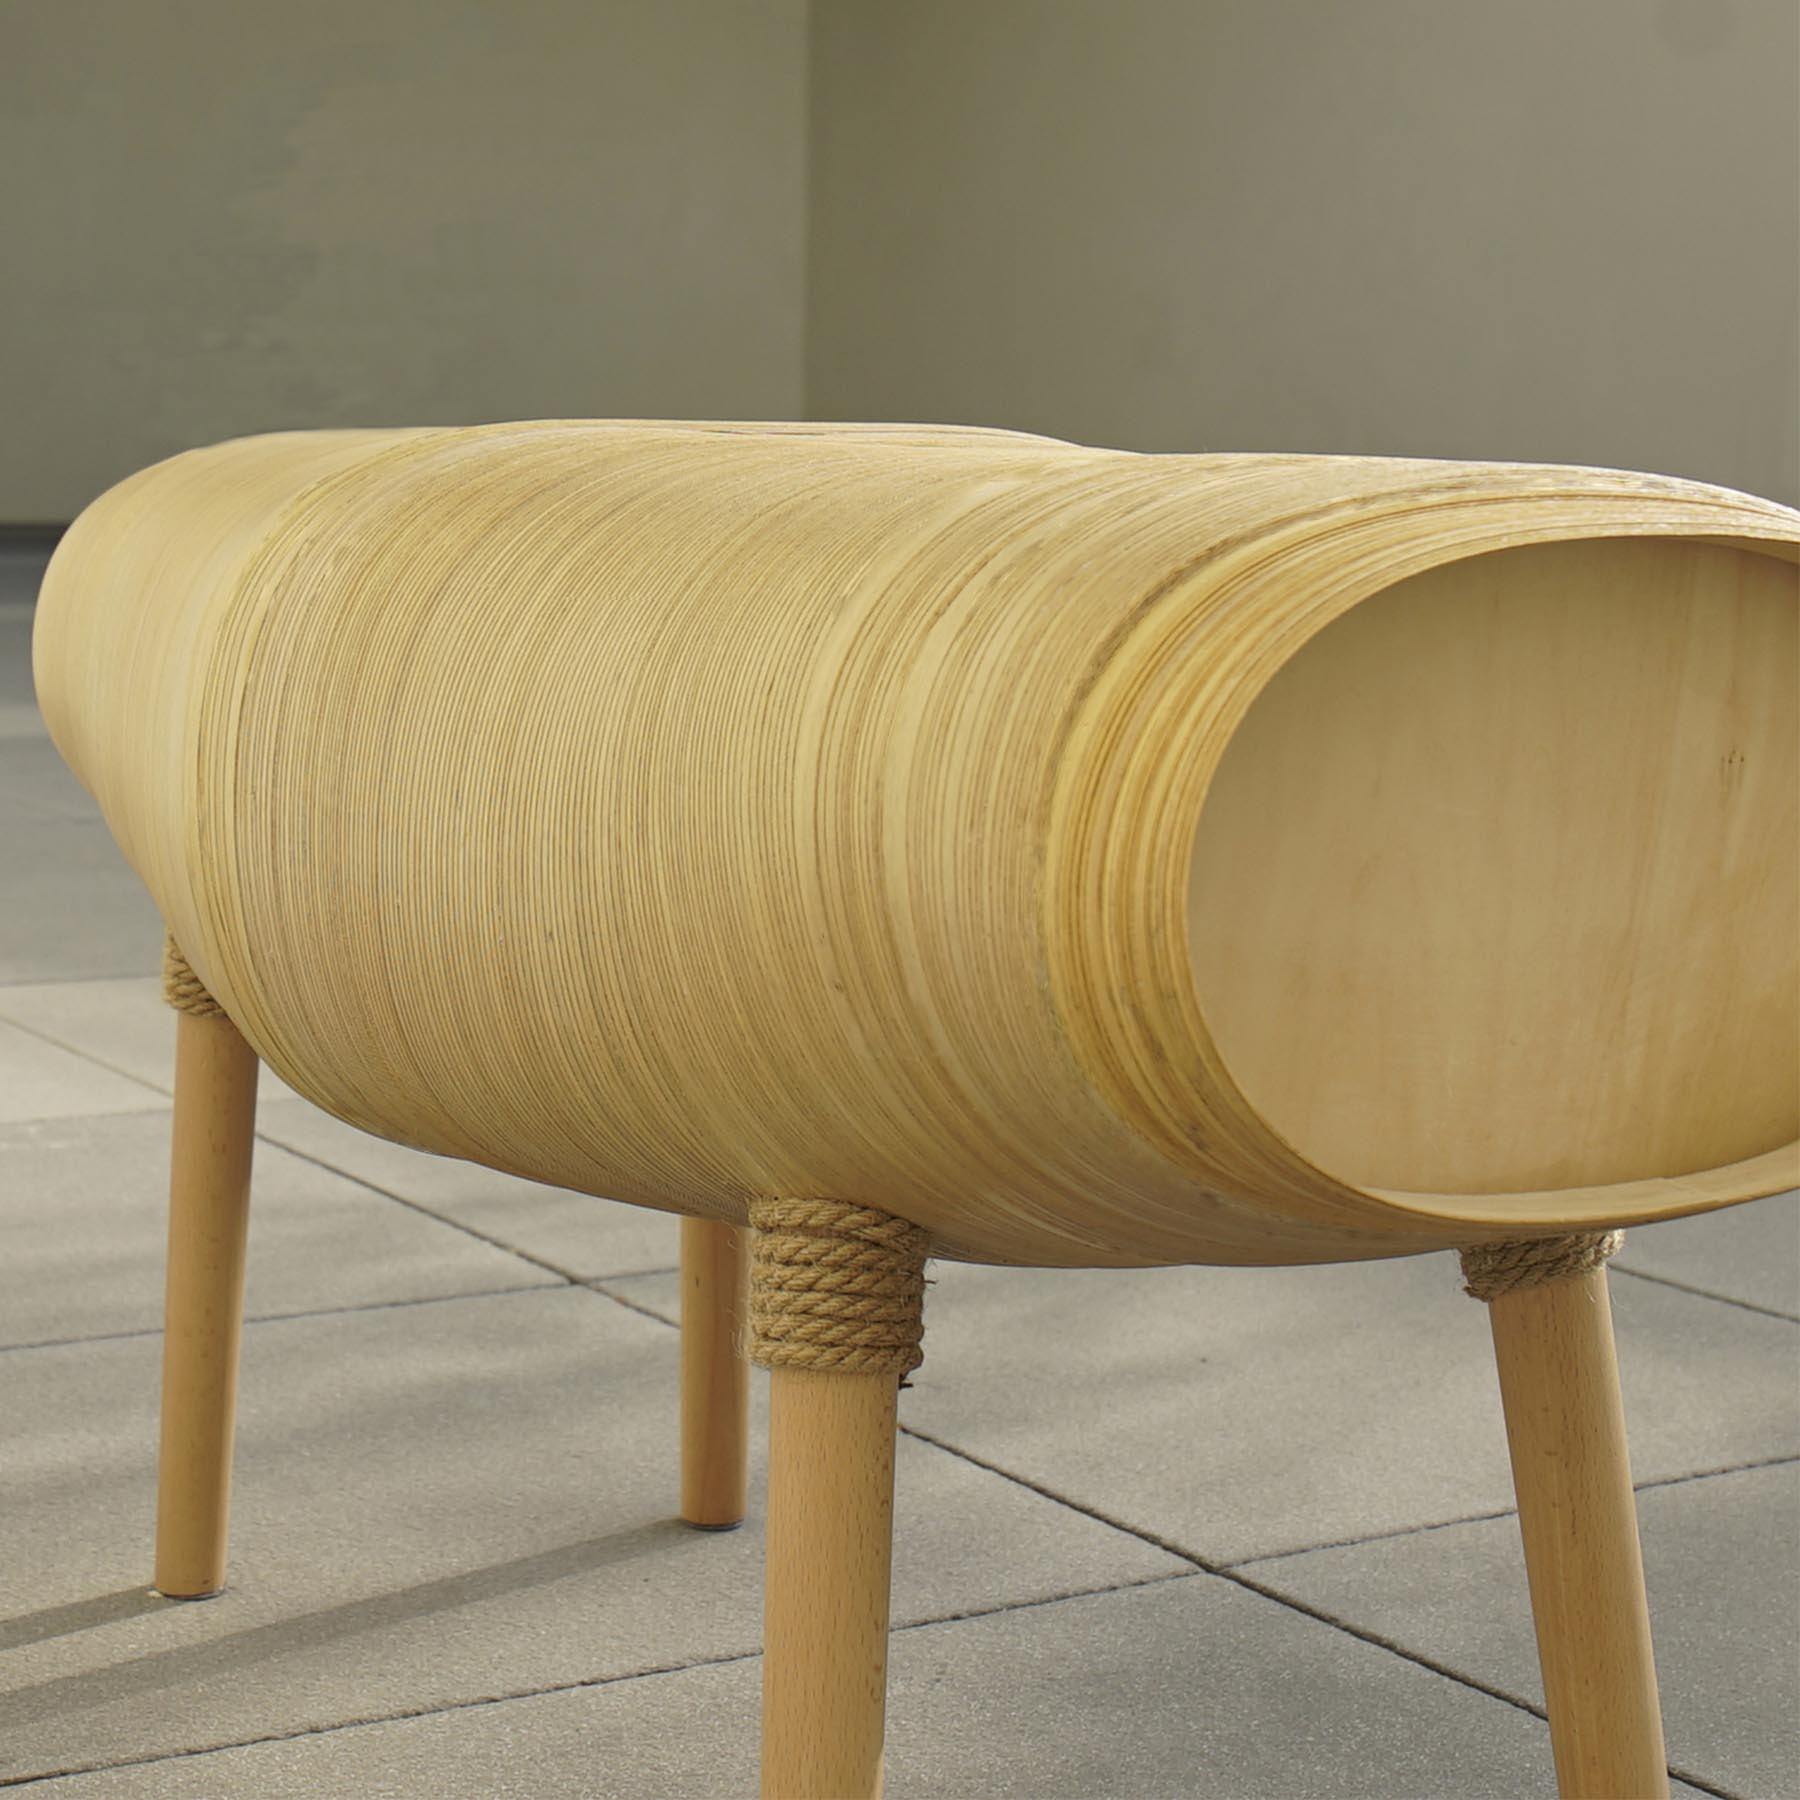 A wood bench.